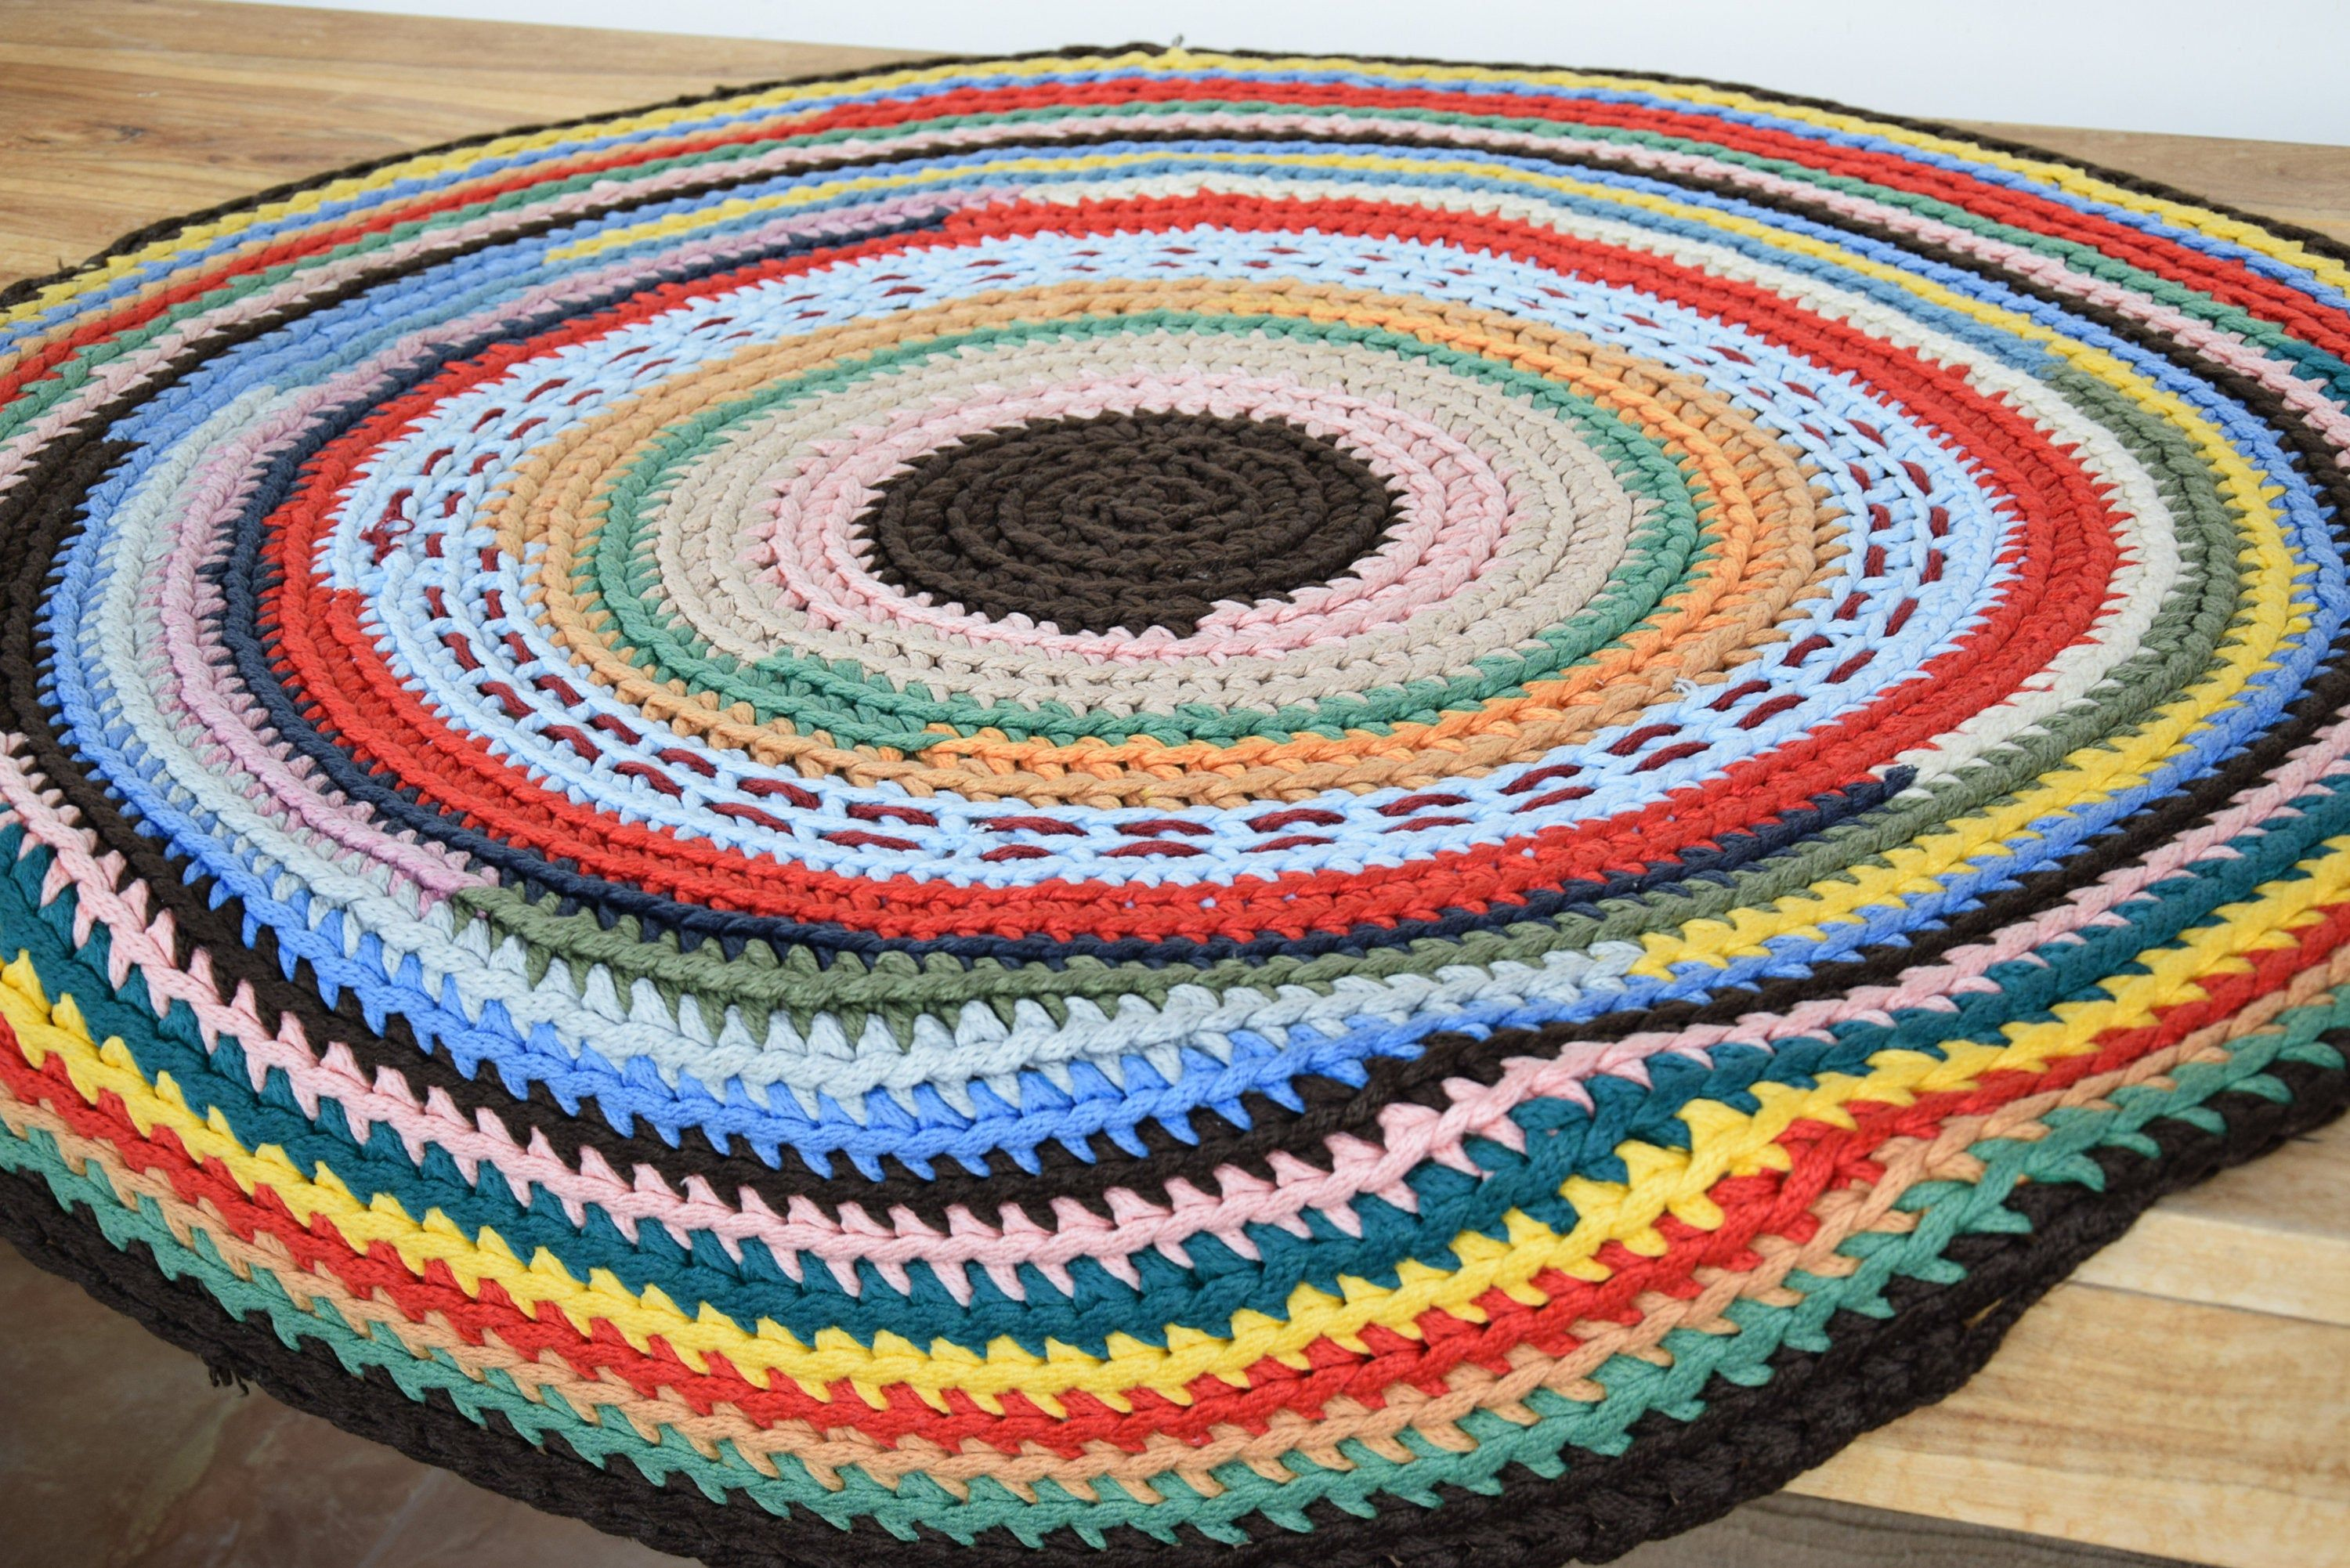 Crocheted Rug Multicolor Vibrant Colors Rug Bohemian Carpet Etsy Bohemian Carpets Crochet Rug Colorful Rugs